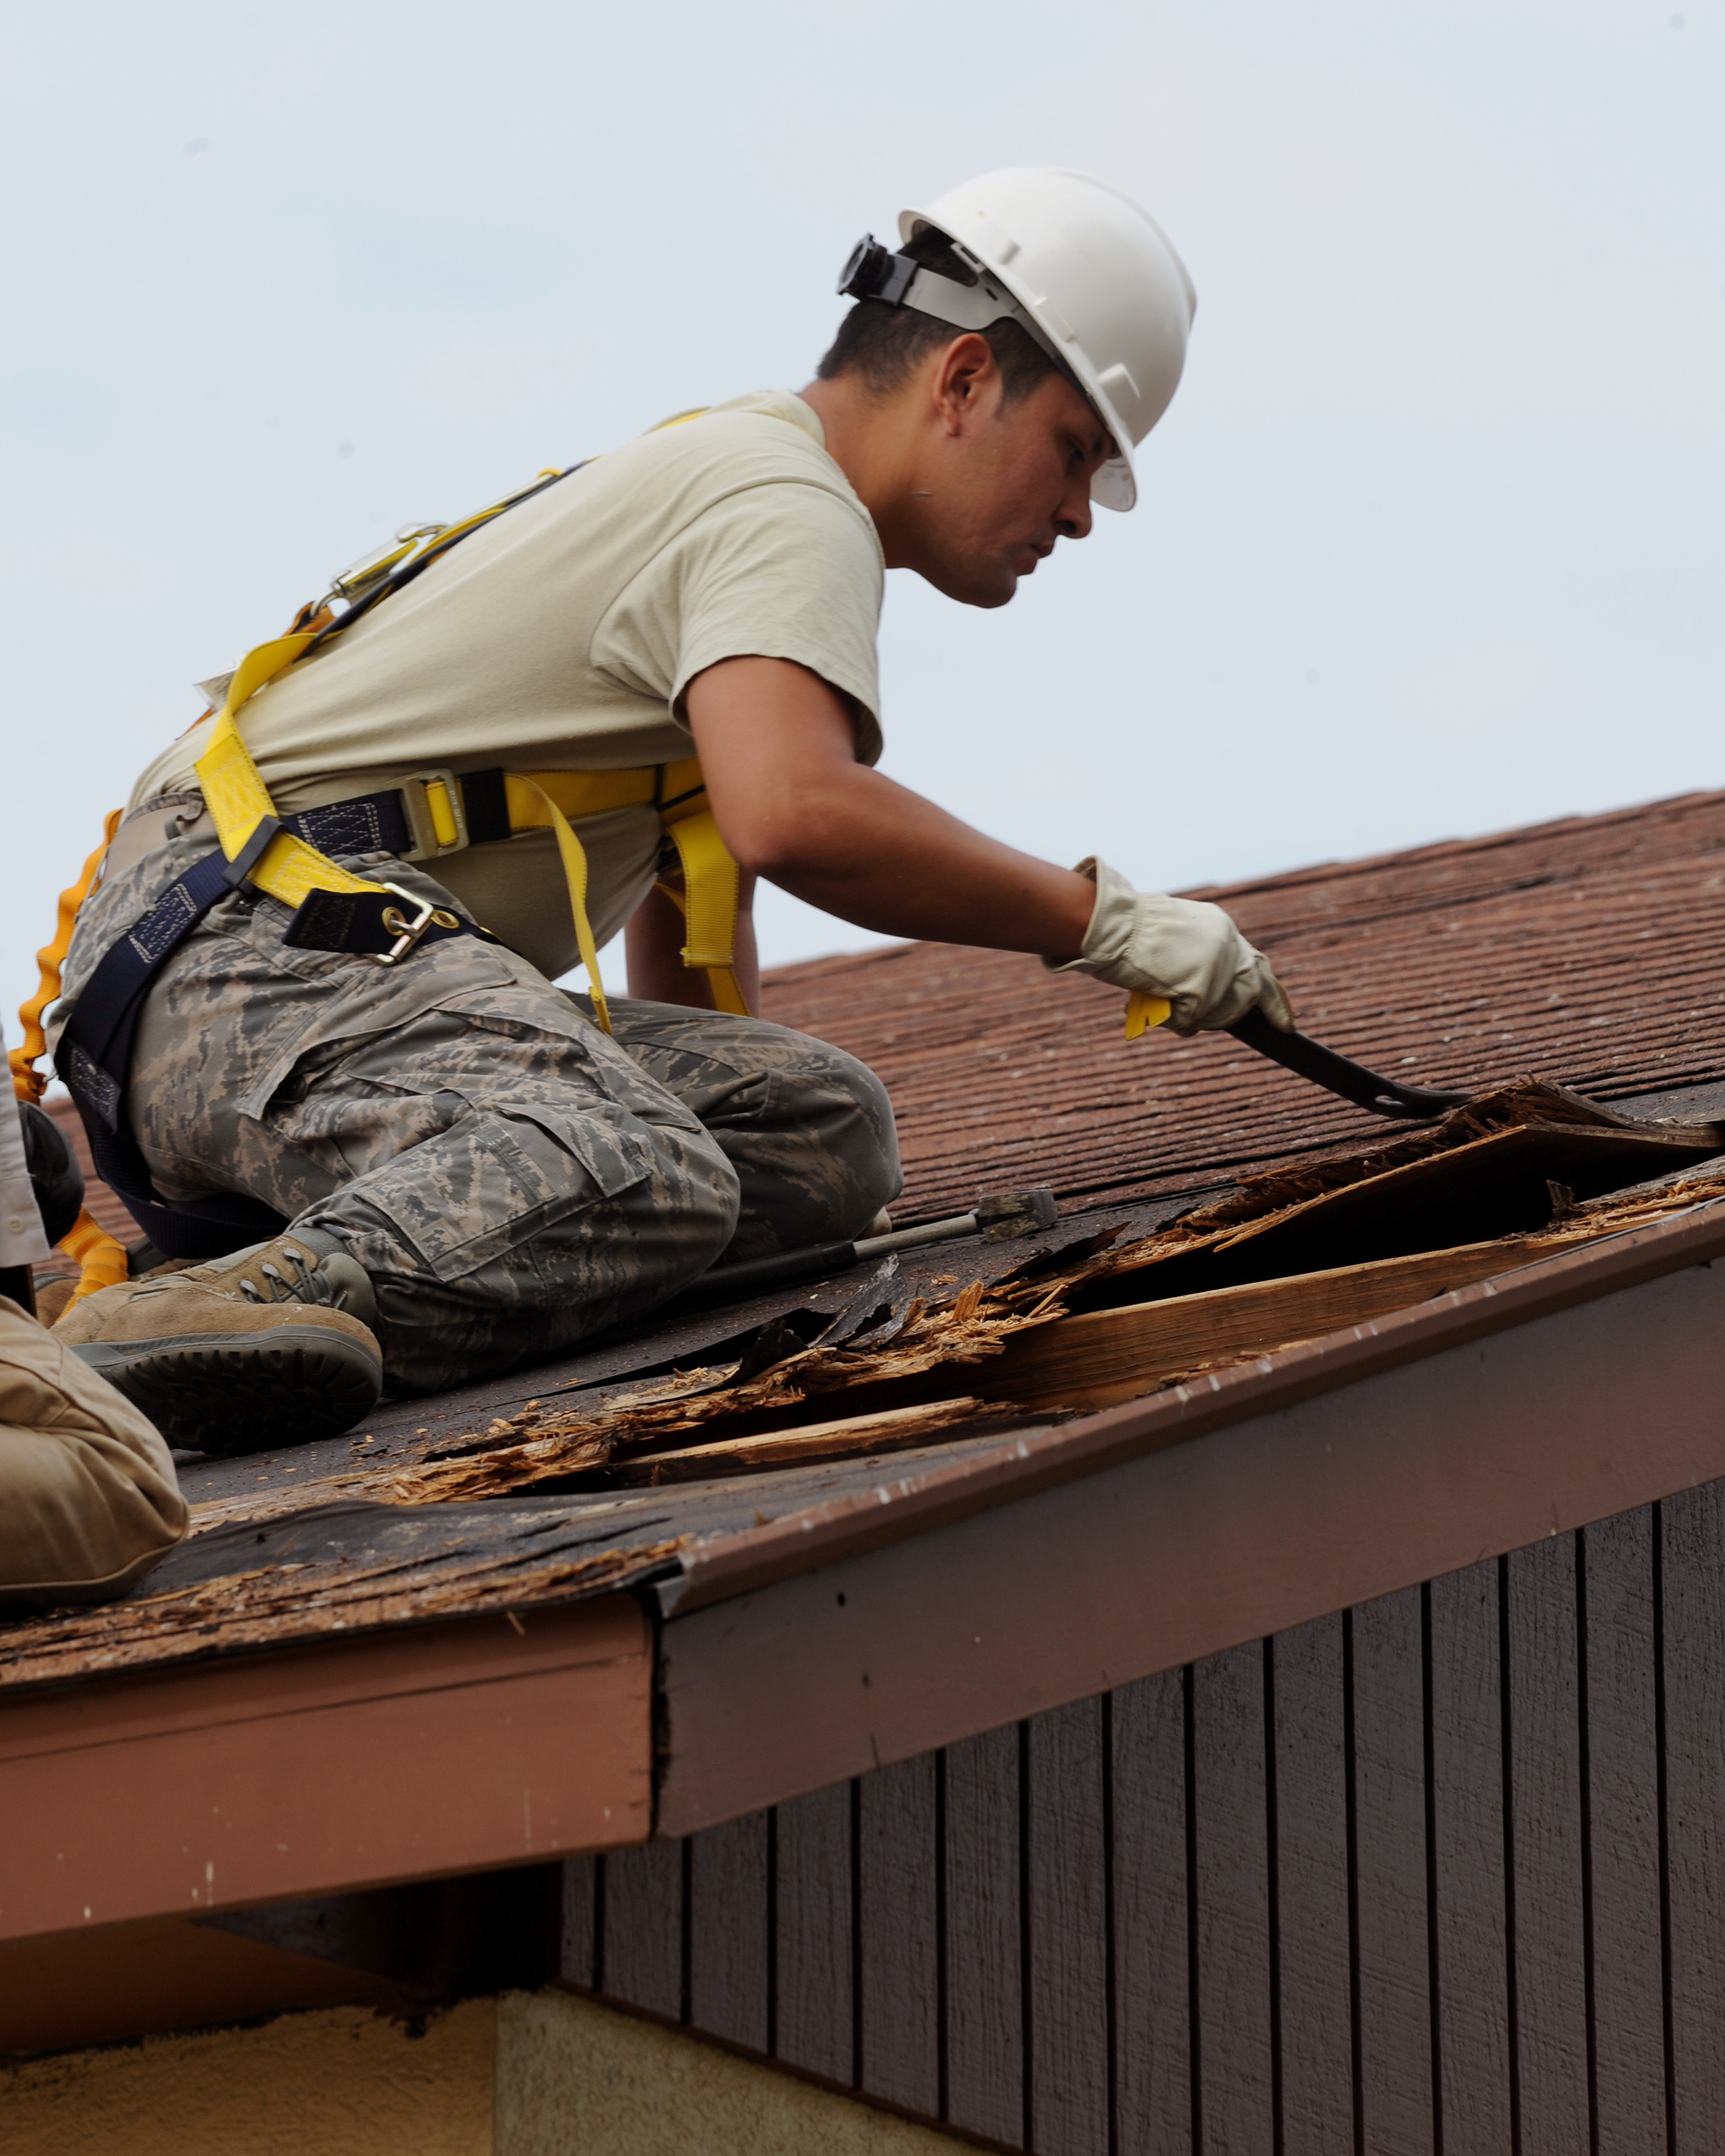 Residential Roofing – Keep Your Home Free of Leaks